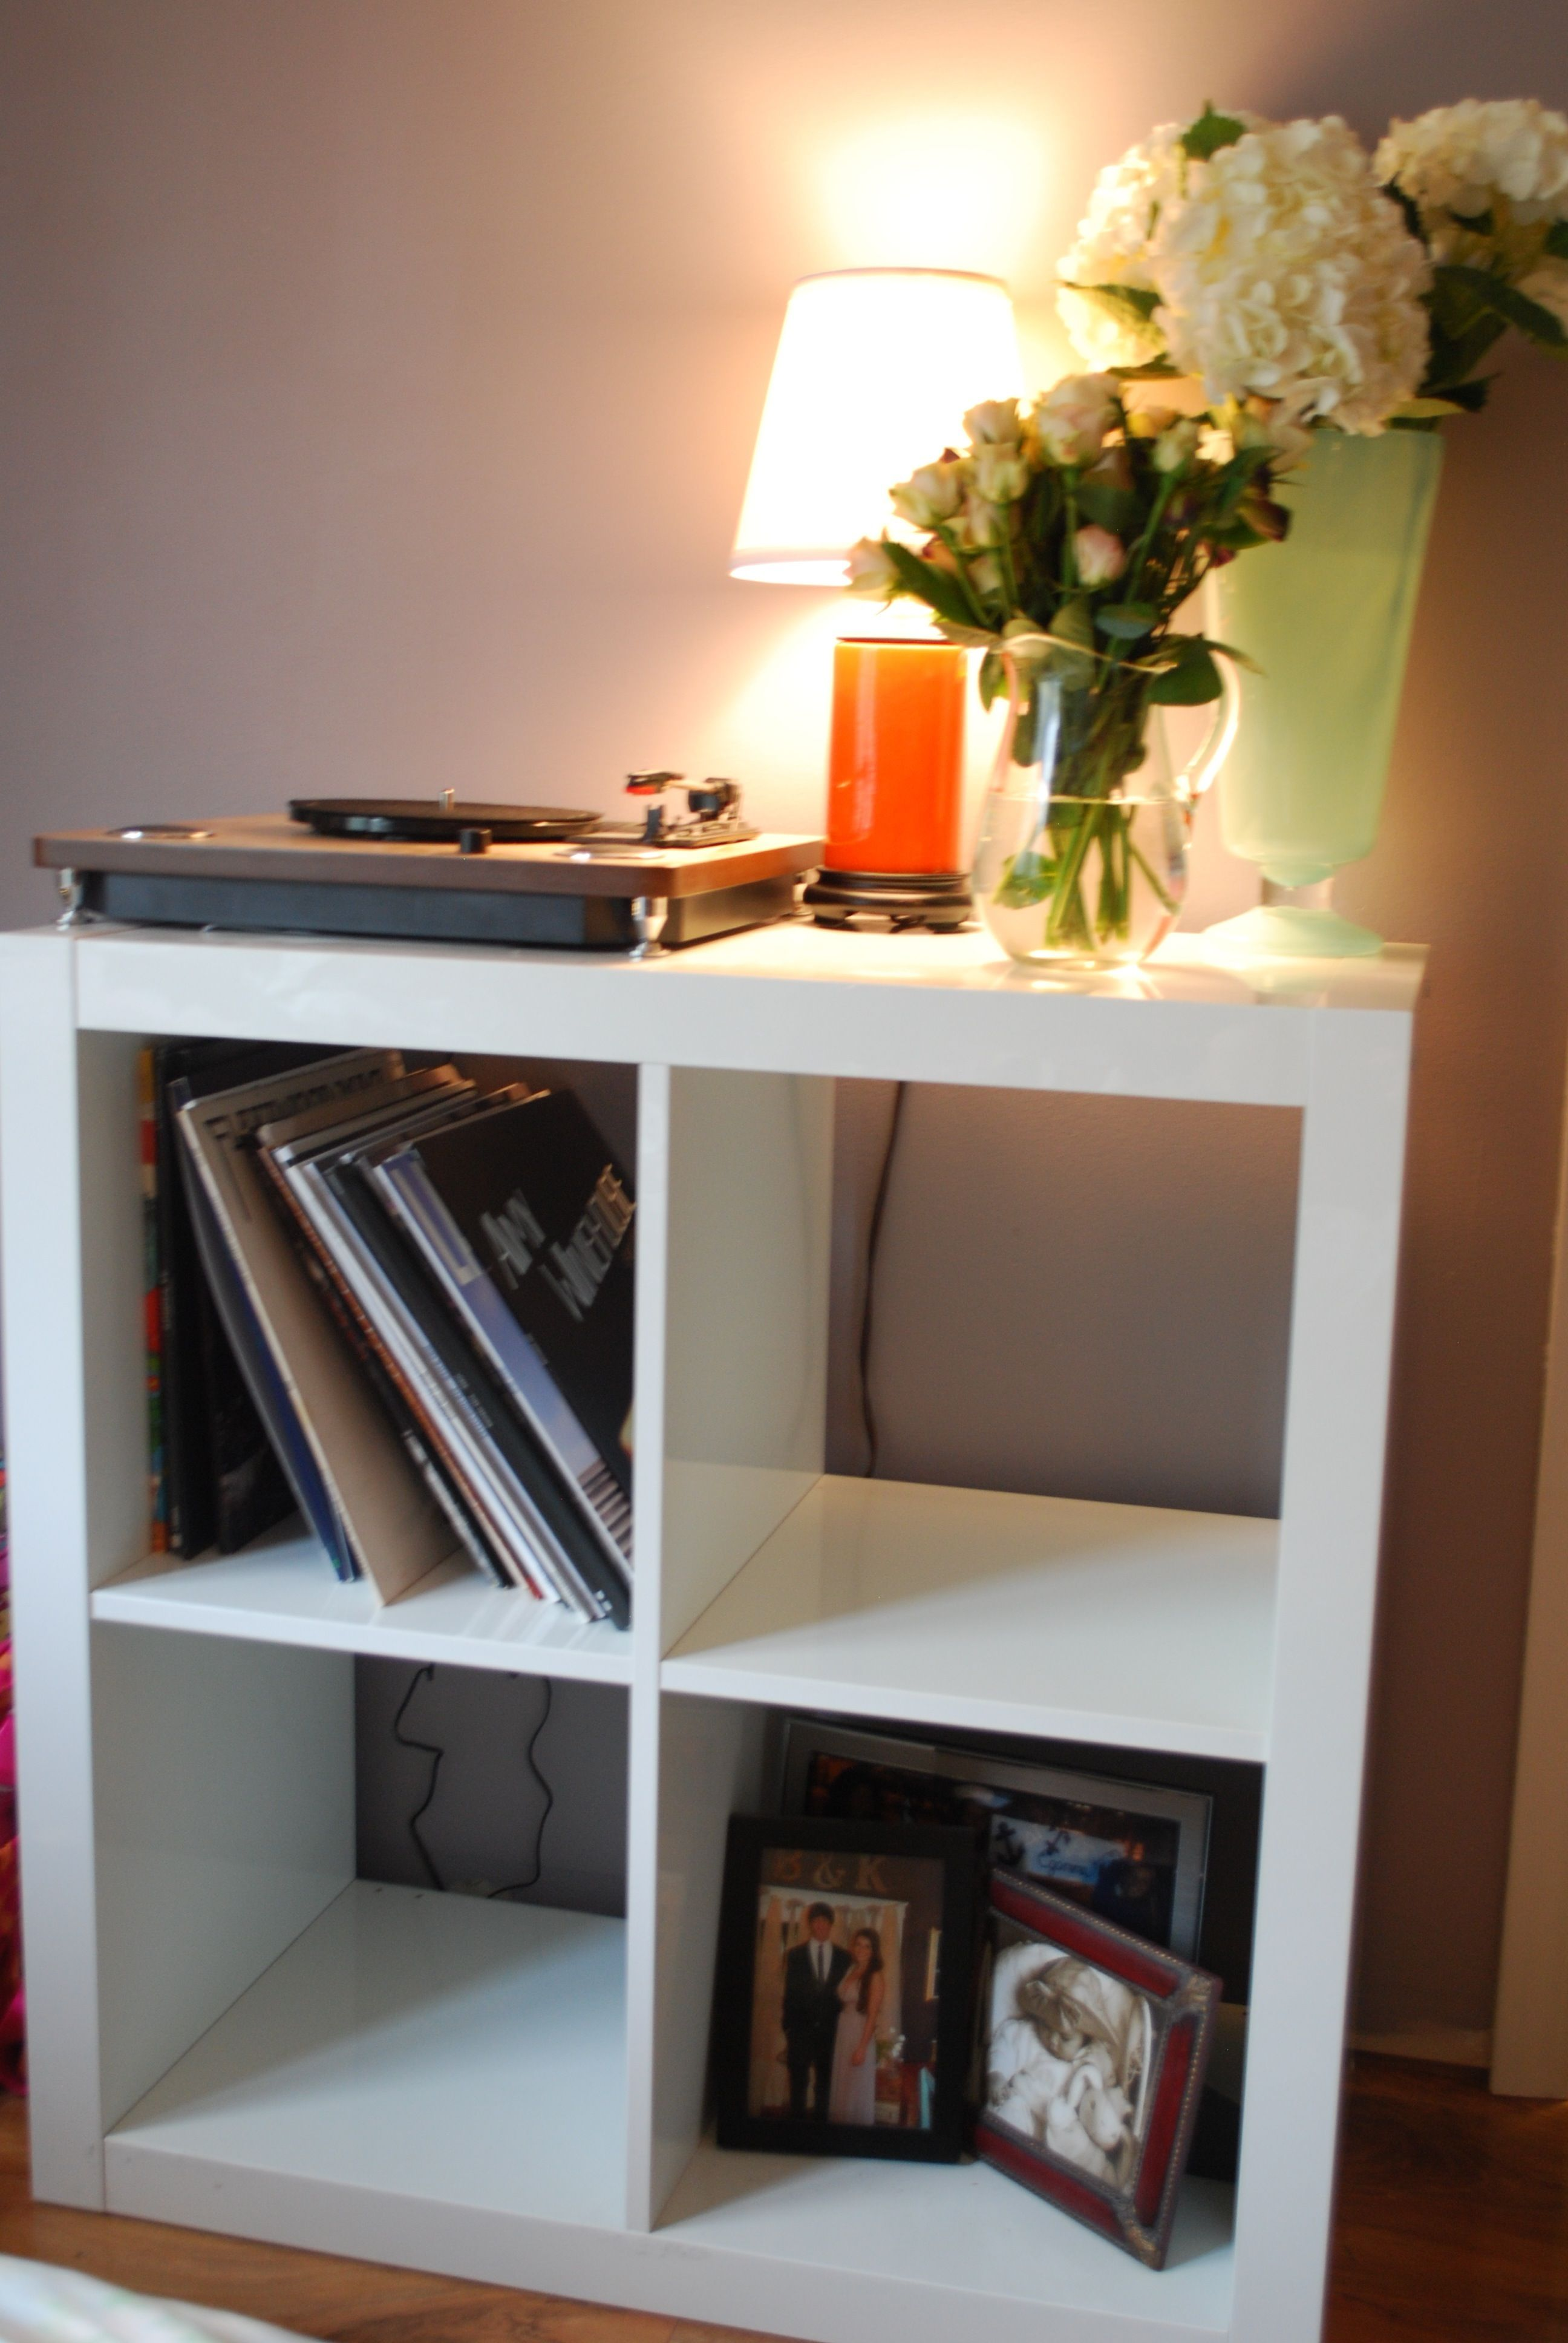 Ikea Expedit Shelves Turned Into A Vinyl Record Player Station